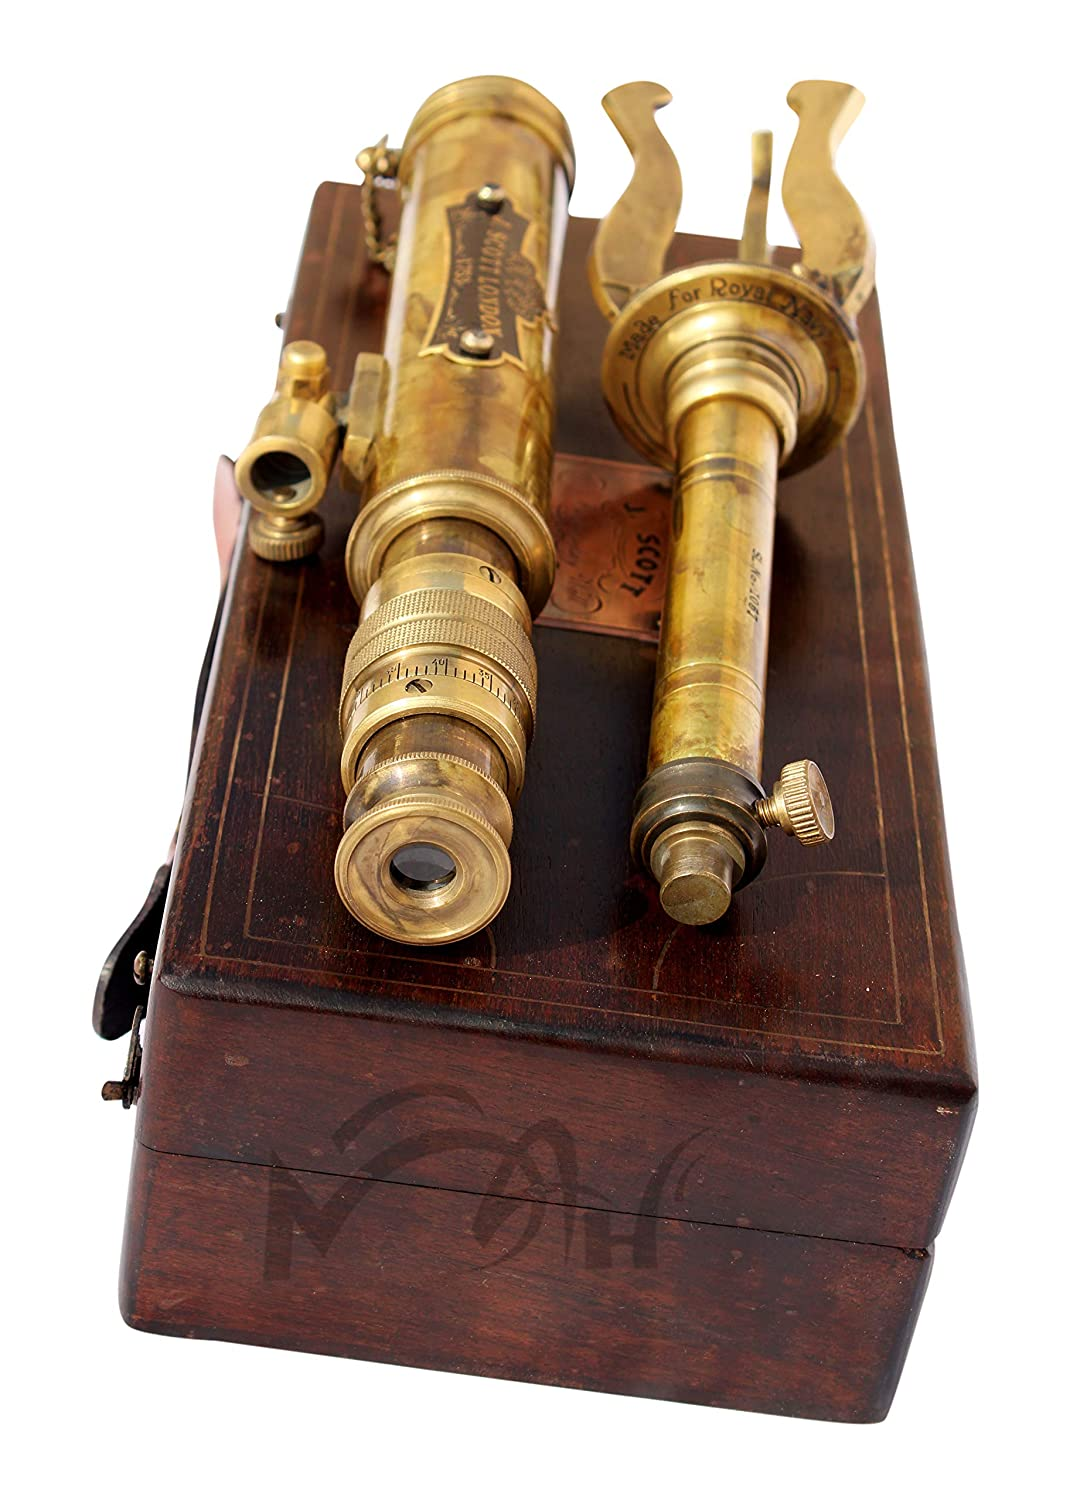 C-3201 MAH 11inch Vintage Style Marine Spyglass Brass Stand Telescope with Wooden Box